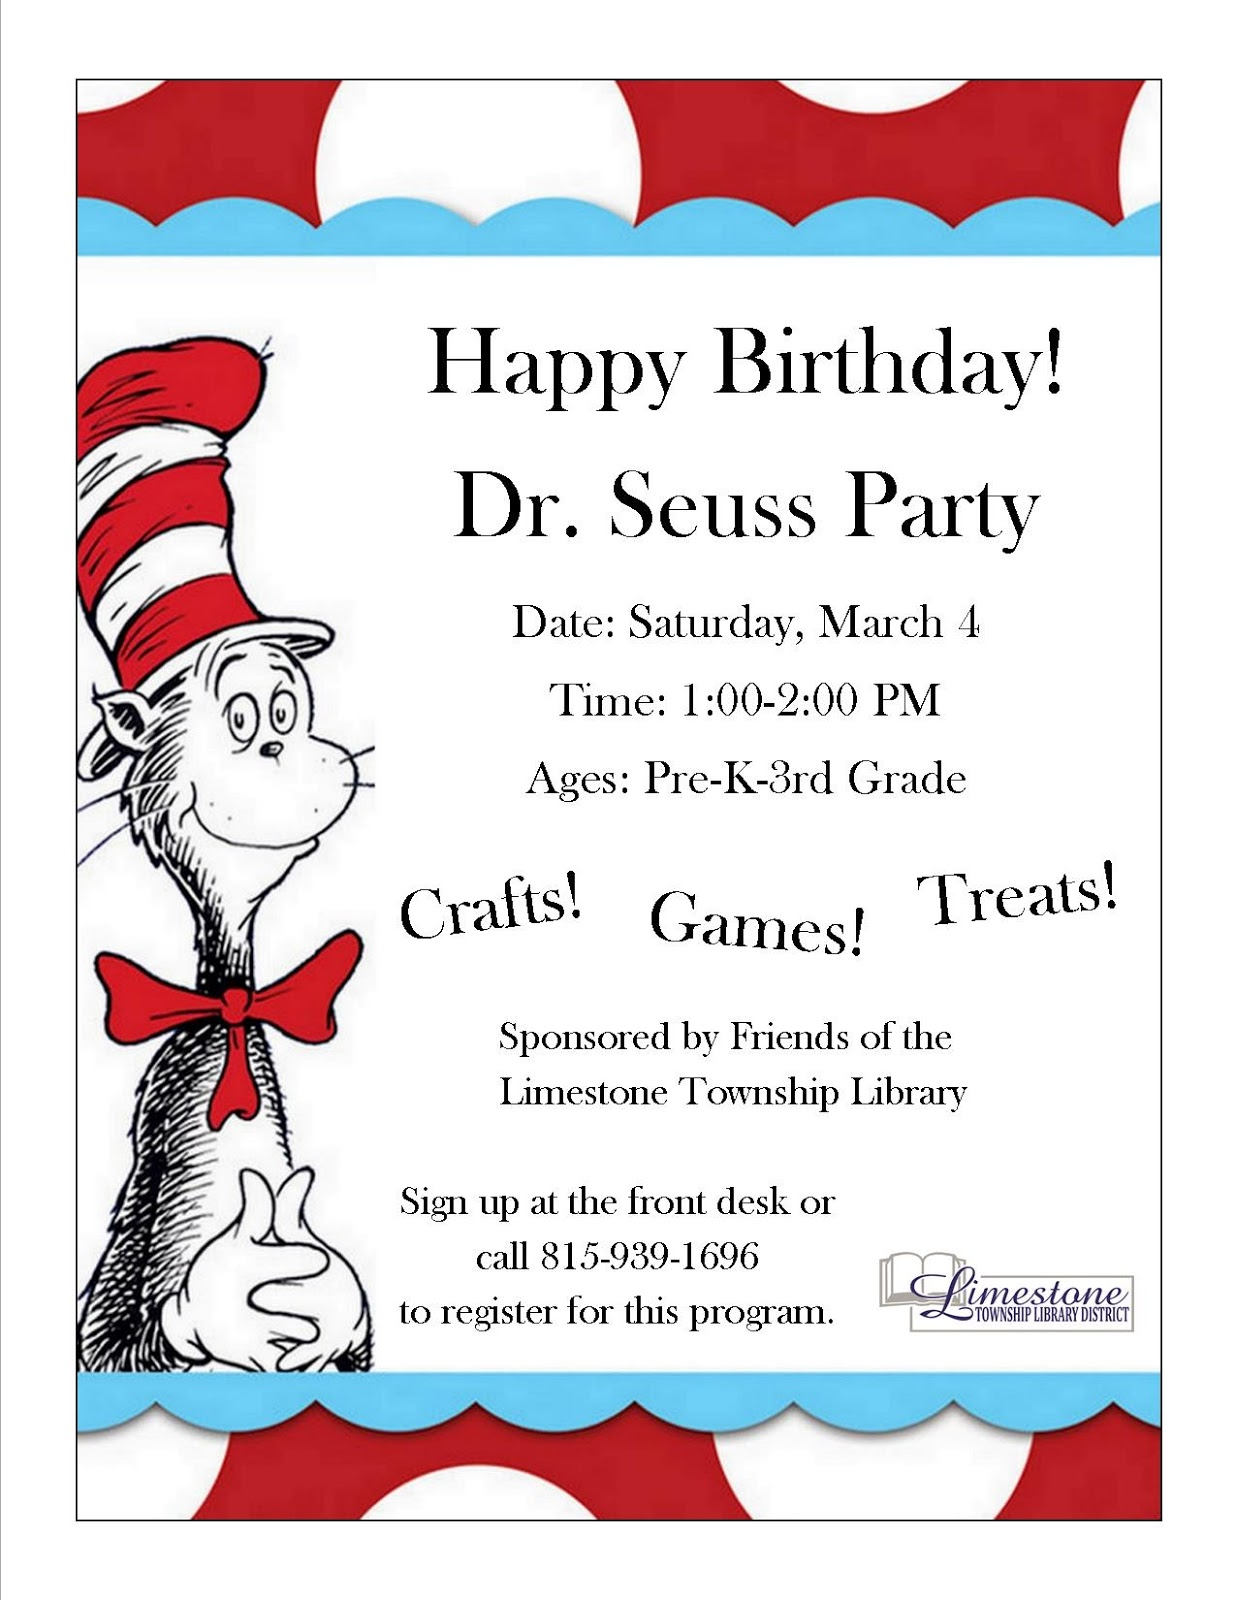 Limestone Township Library District: Happy Birthday Dr. Seuss